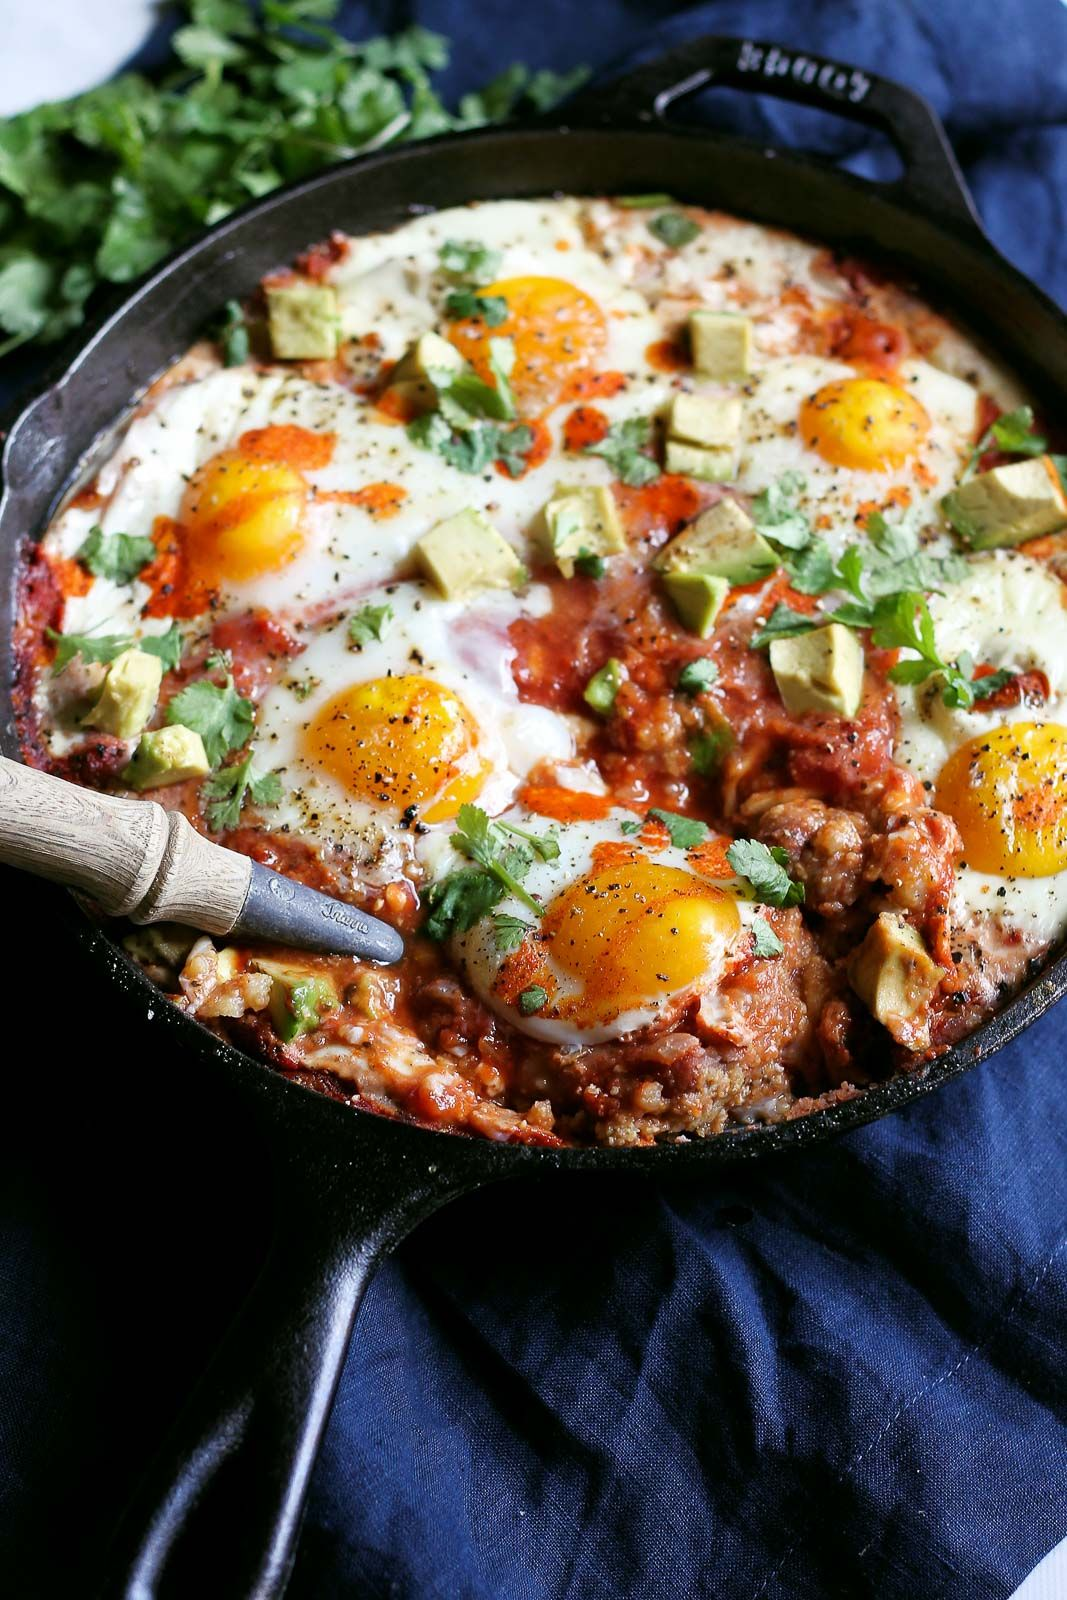 Check out polenta refried beans egg skillet bake it 39 s so easy to make skillets protein - Baked polenta cheese recipes ...